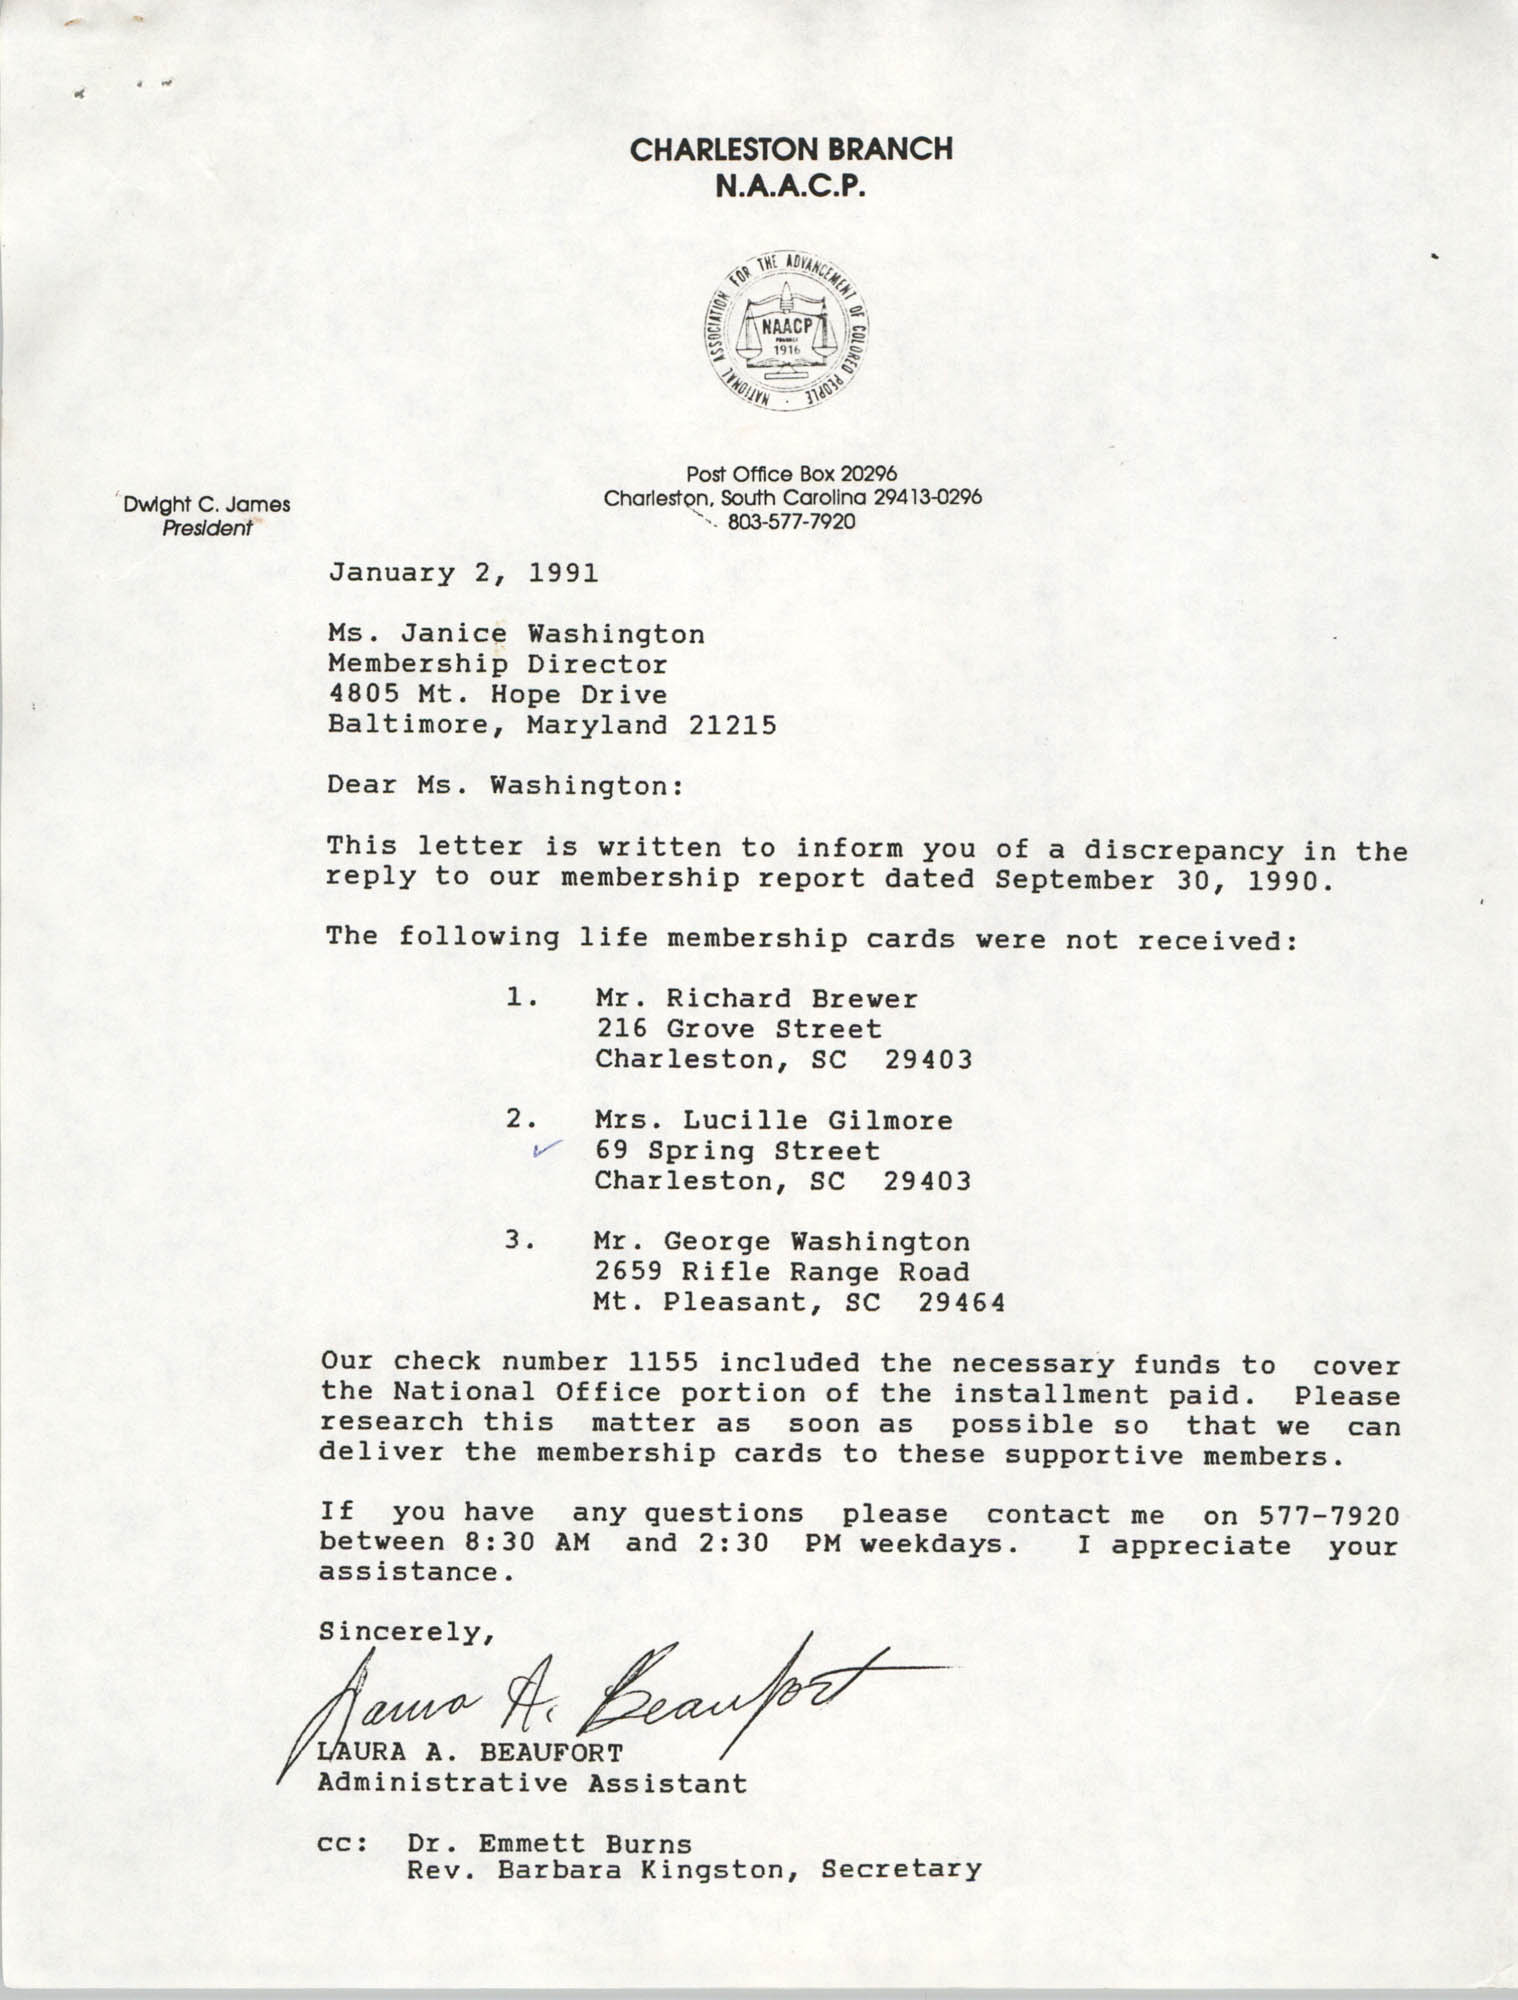 Letter from Laura A. Beaufort to Janice Washington, January 2, 1991